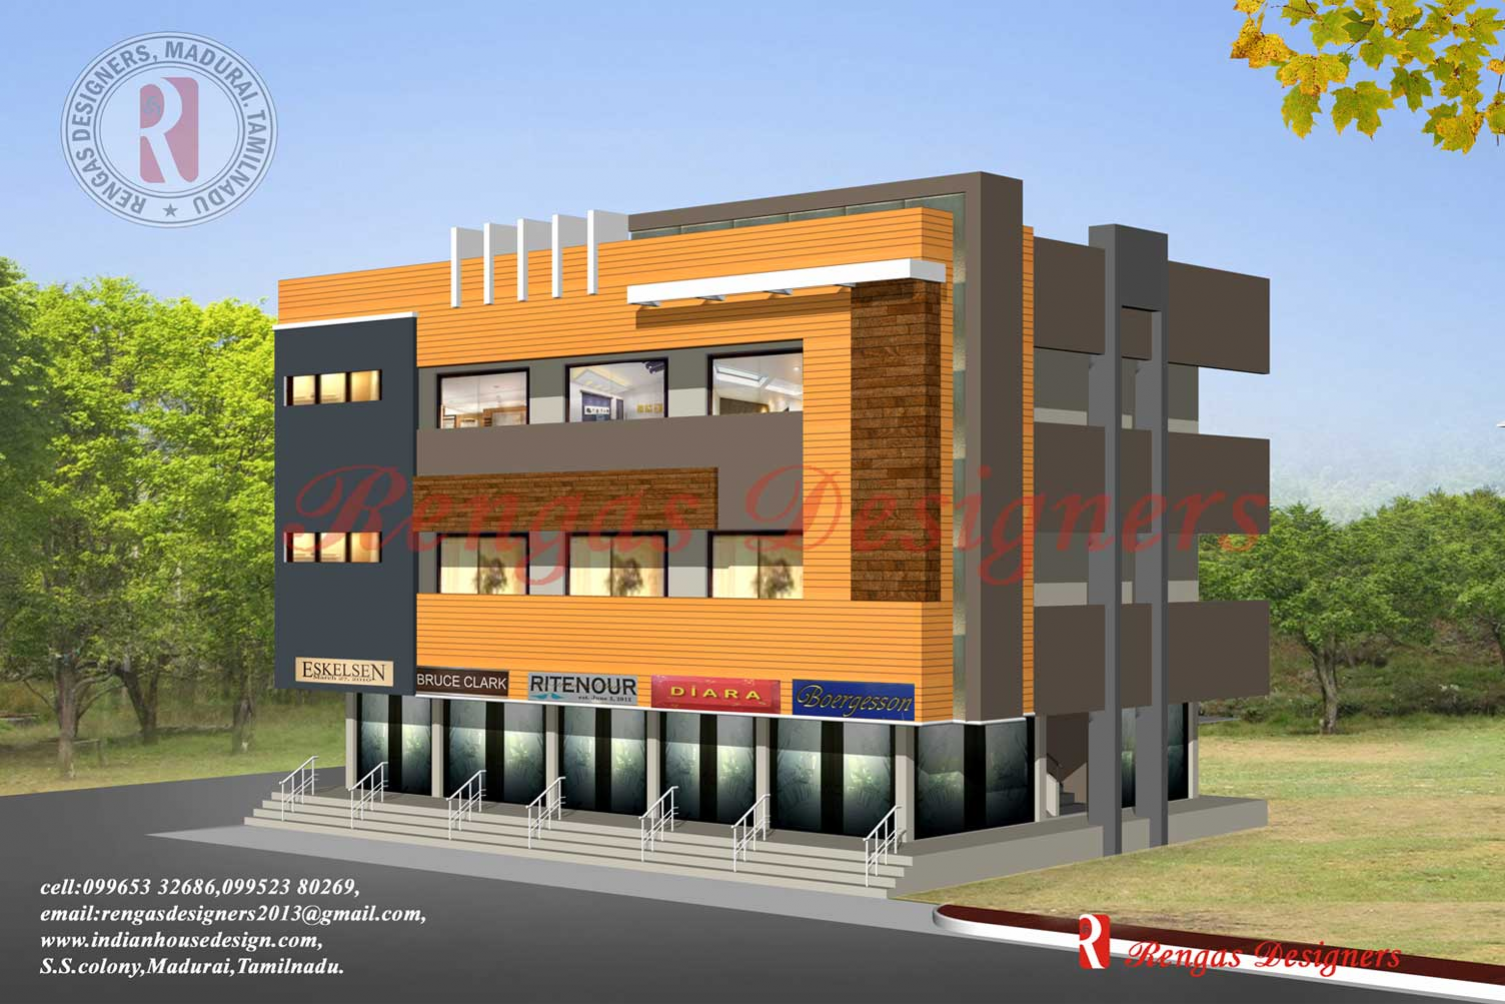 Design Of Front Elevation Of Commercial Building : Commercial building exterior front elevation design in